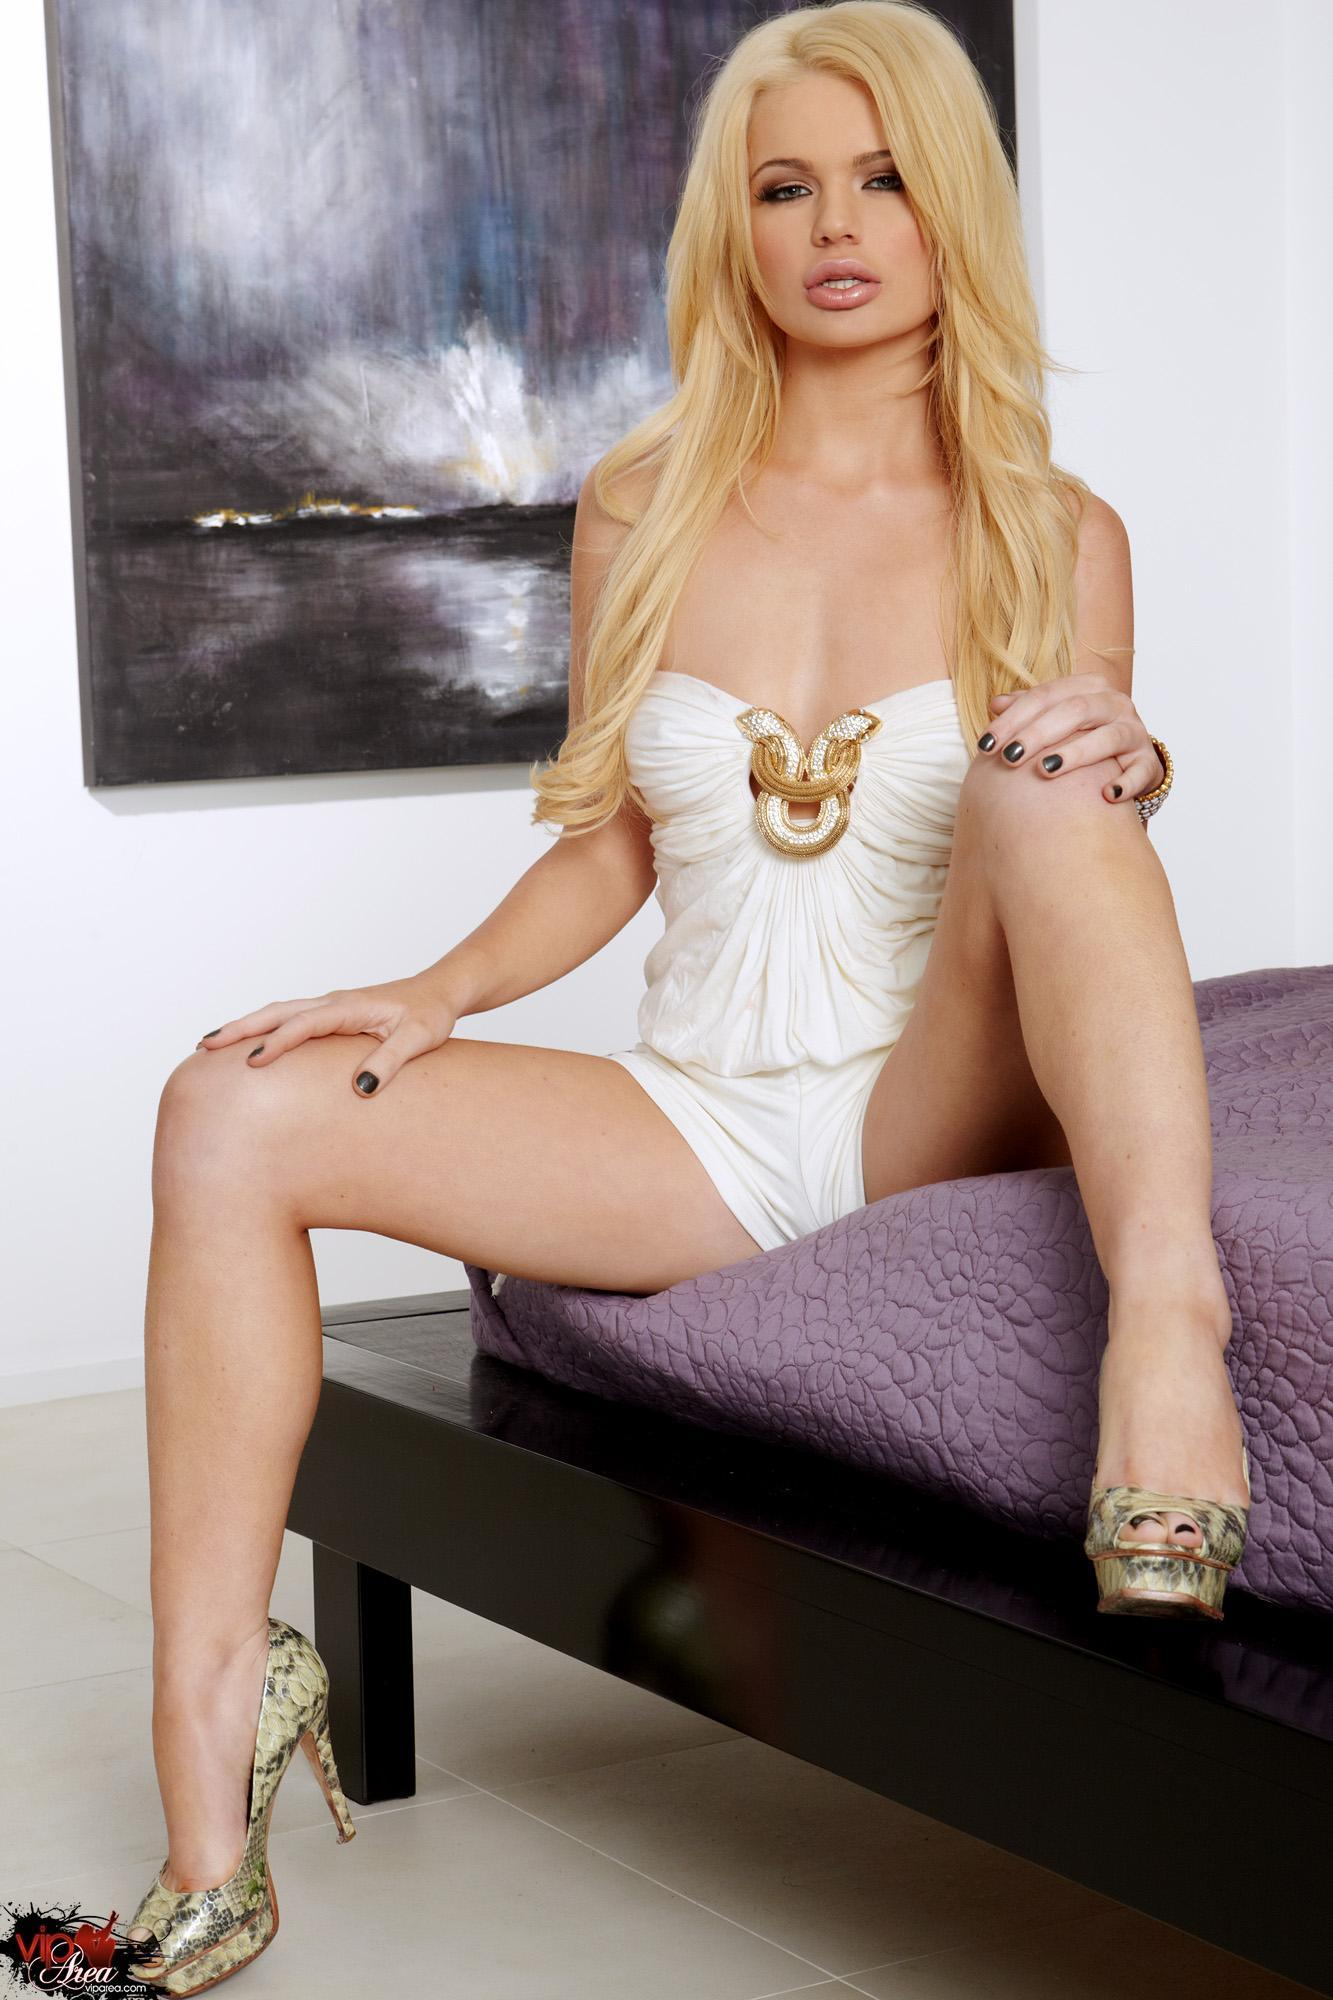 Alexis ford pics